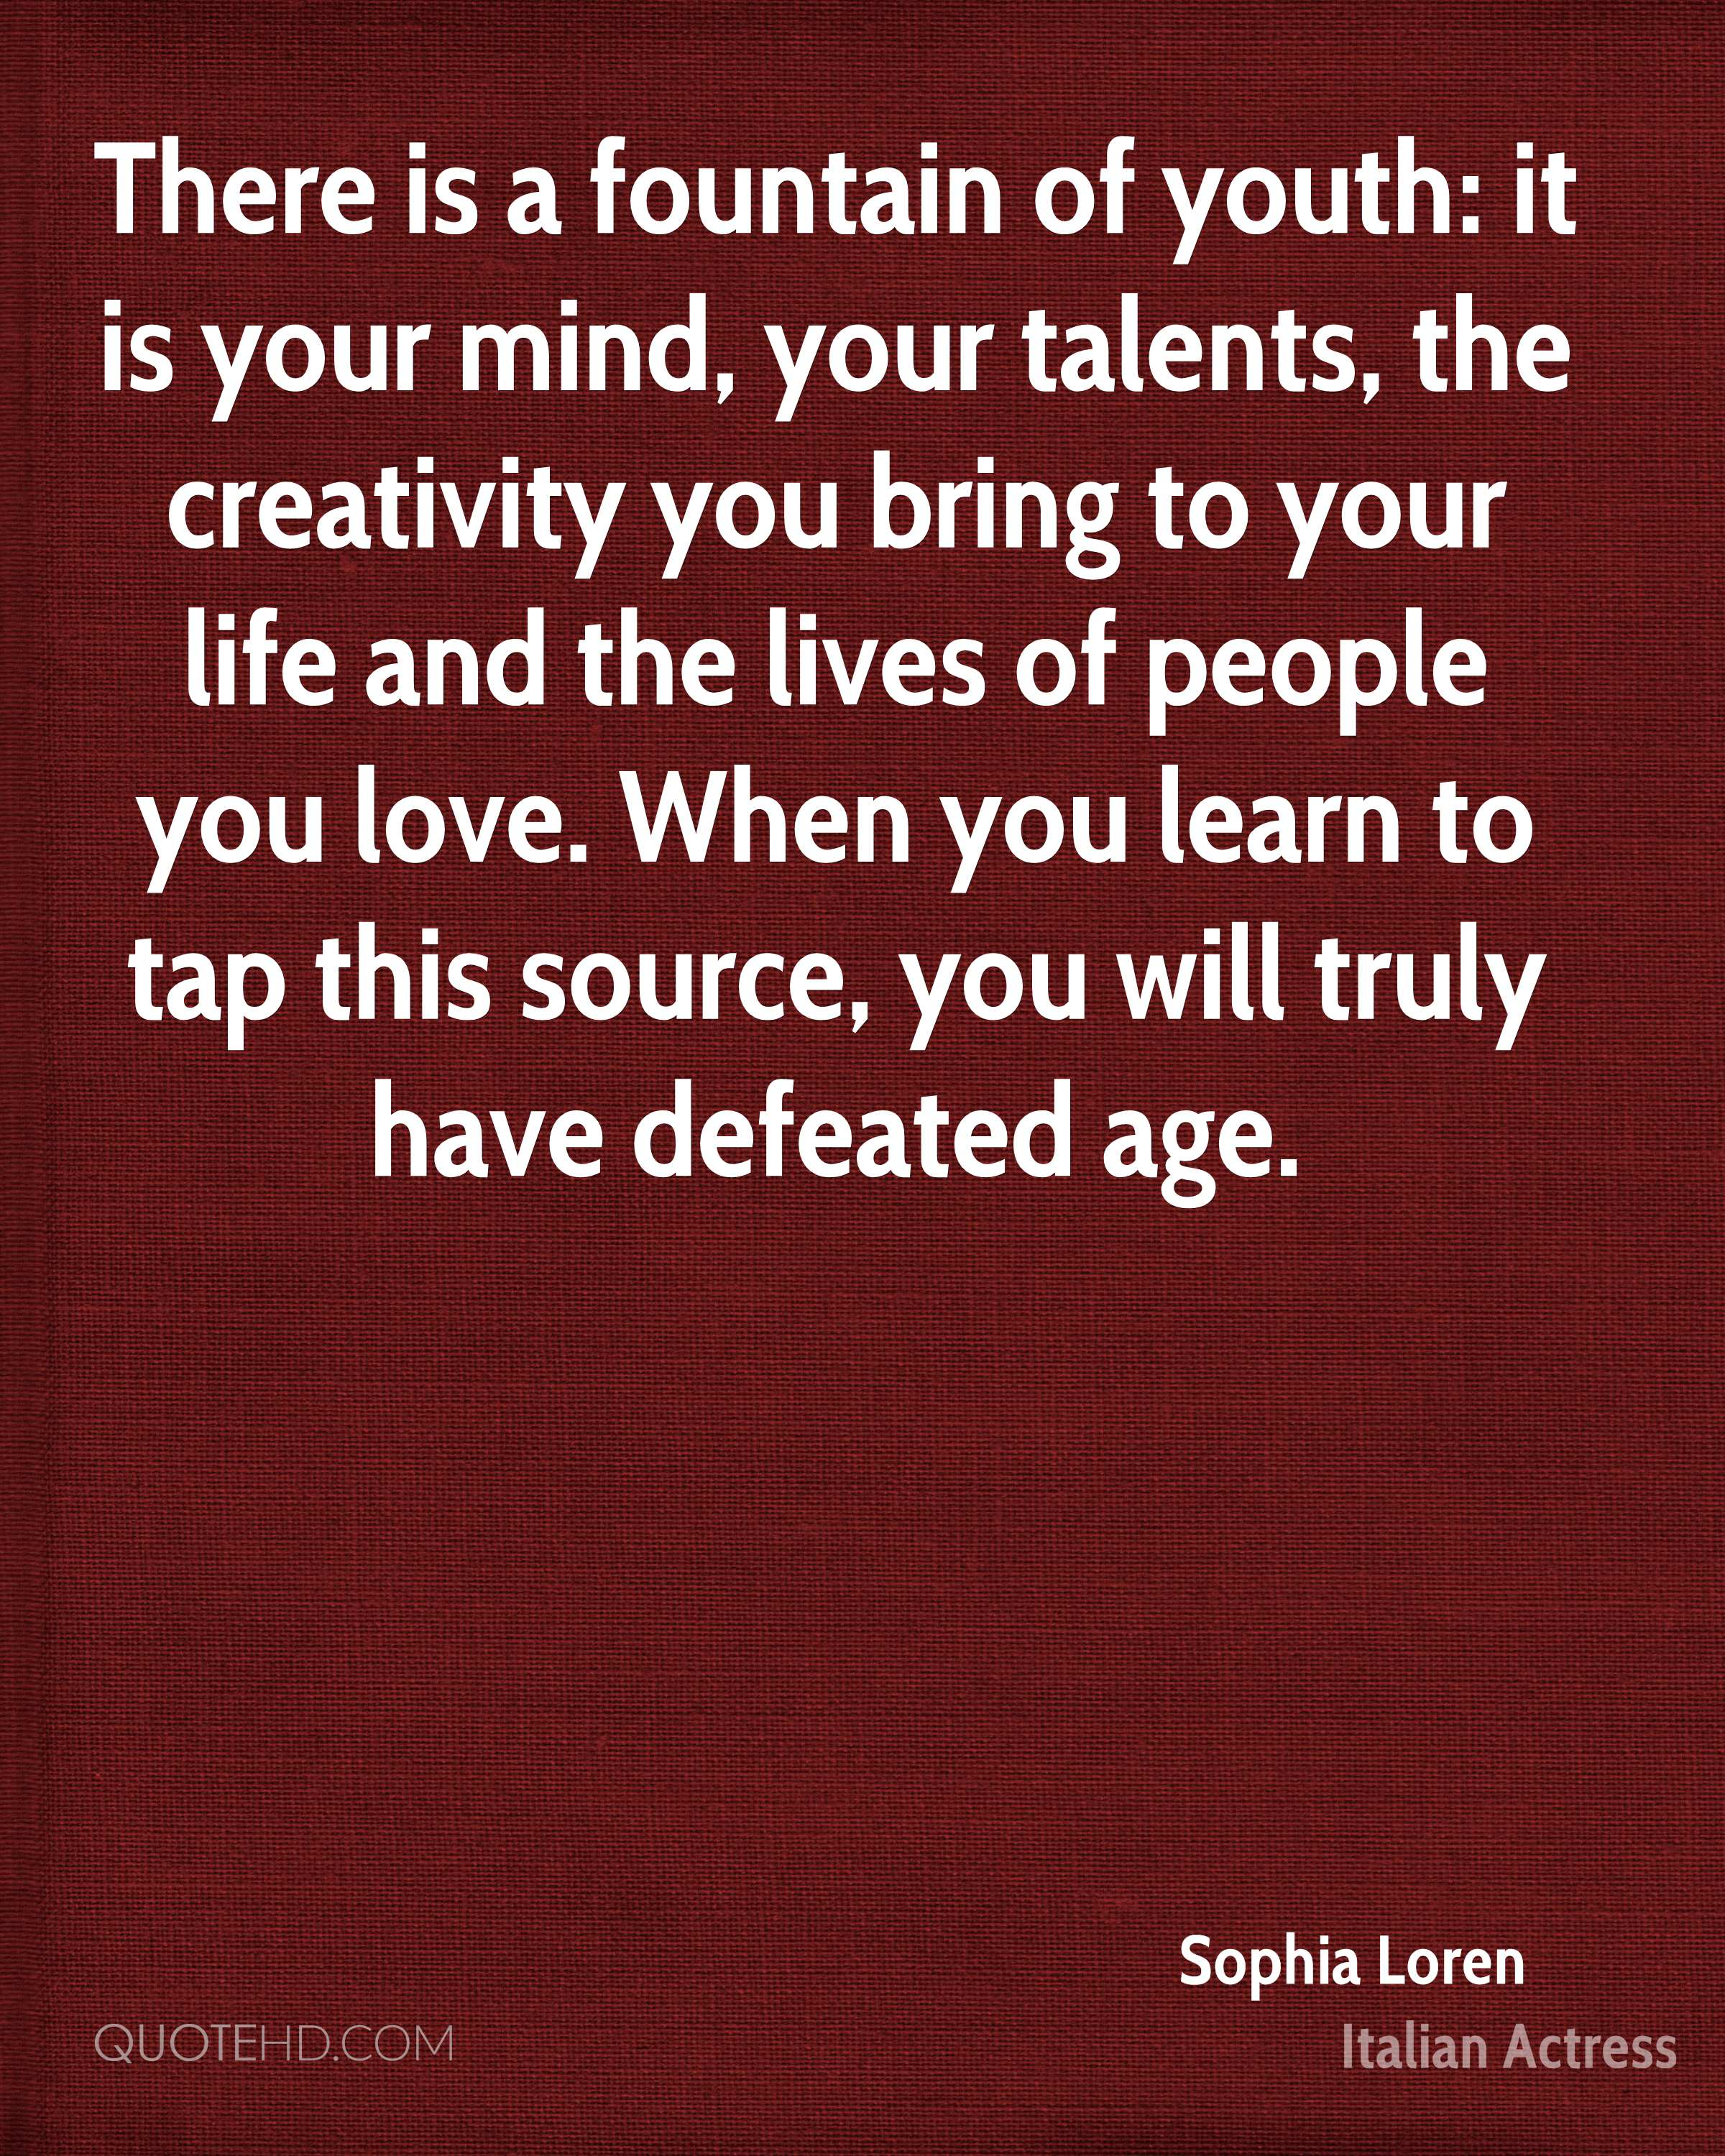 There is a fountain of youth: it is your mind, your talents, the creativity you bring to your life and the lives of people you love. When you learn to tap this source, you will truly have defeated age.